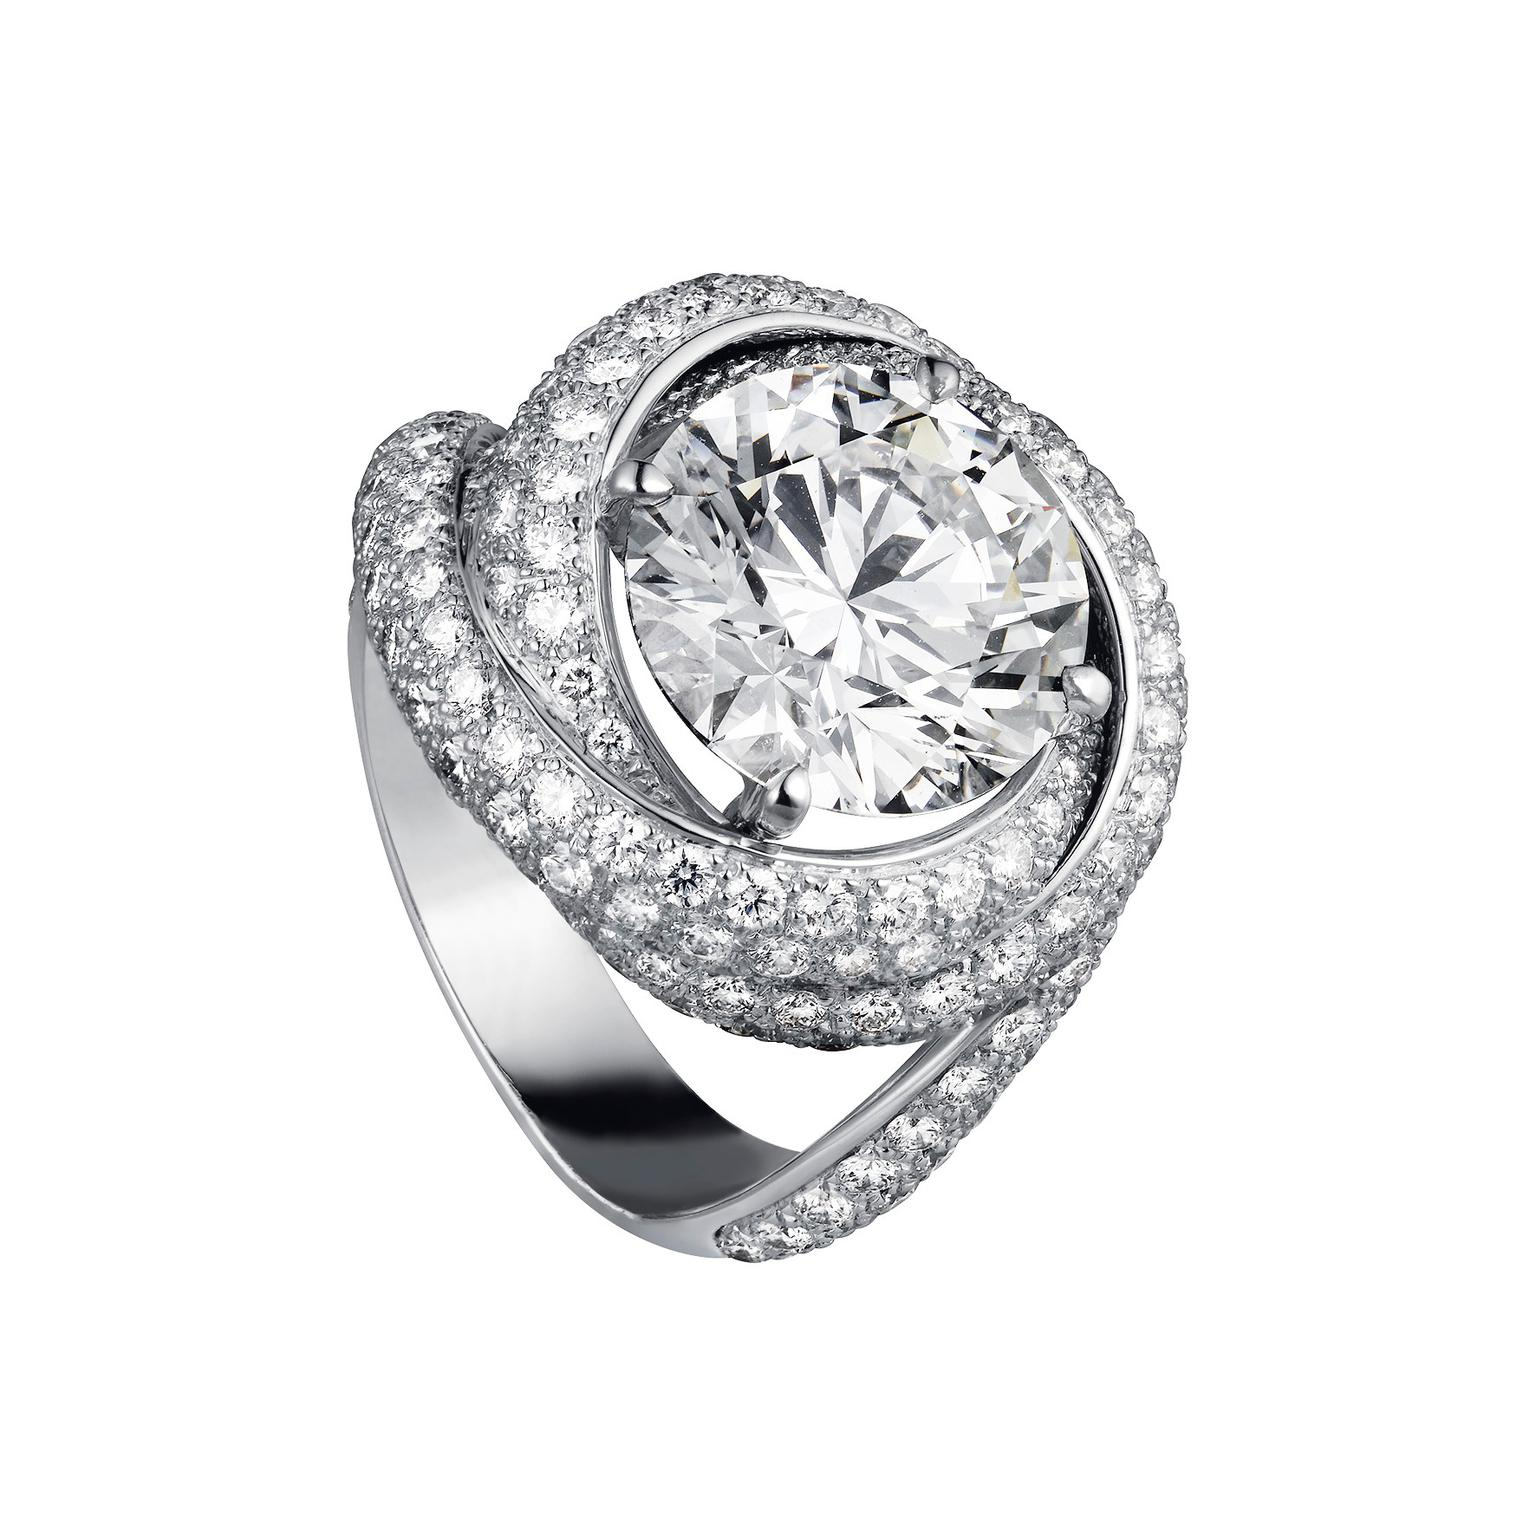 Cartier Trinity Ruban solitaire diamond ring